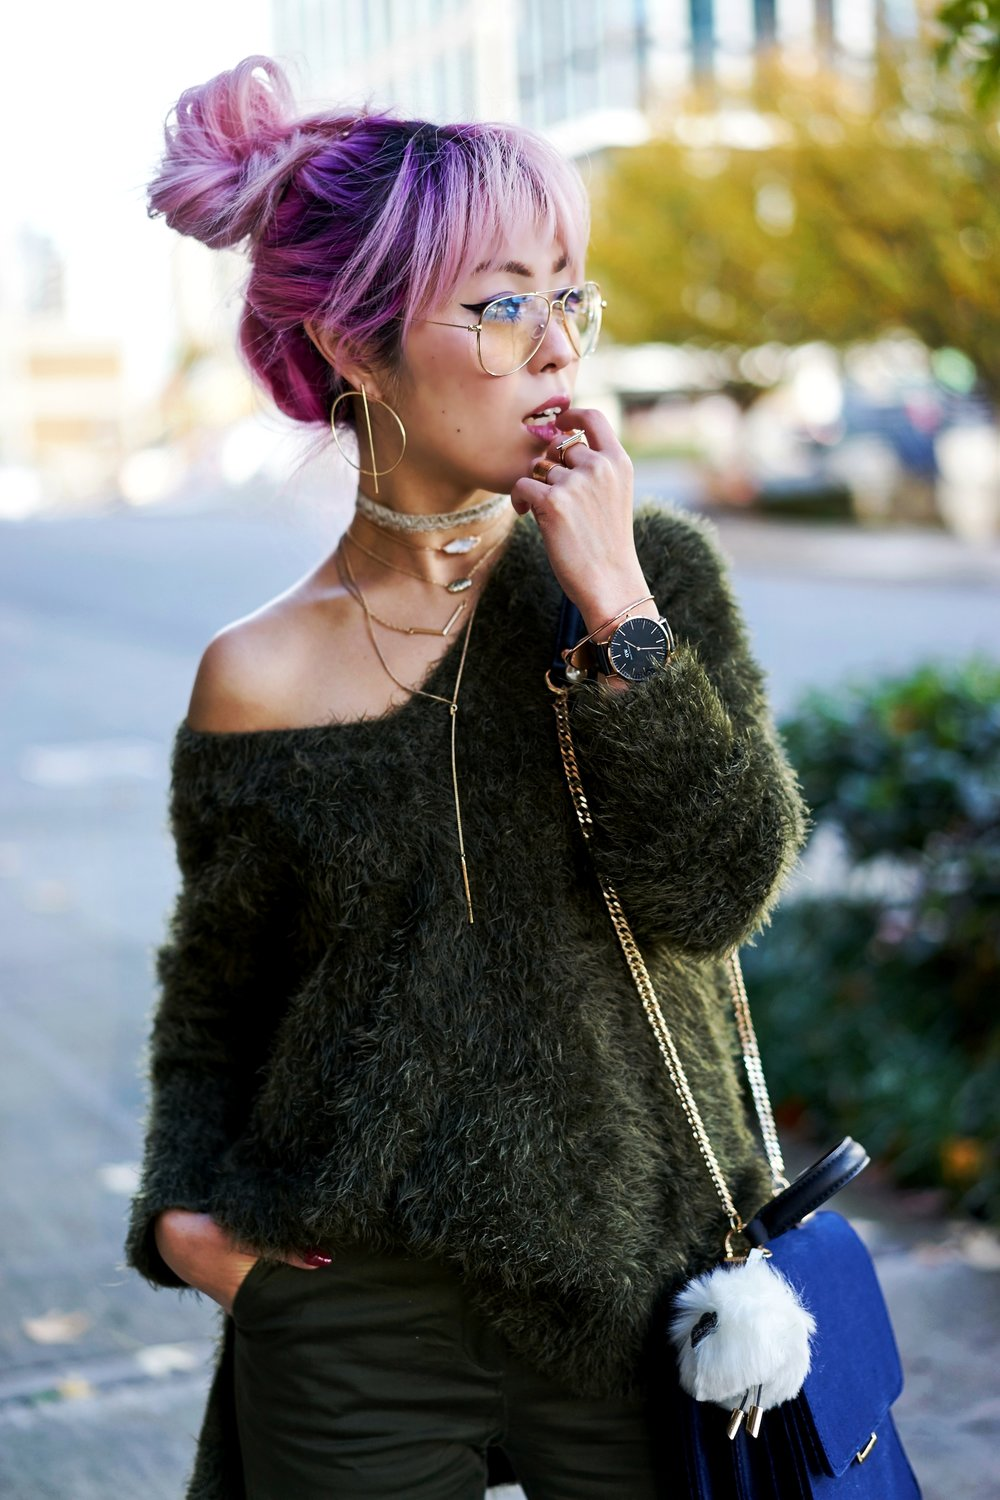 H&M olive chunky sweater-H&M cropped trousers-ZARA navy velvet bag-mango earrings-Daniel Wellington Watch-Clear Lens aviator-Aika's Love Closet-Seattle Style blogger-japanese-pink hair-colored hair 2